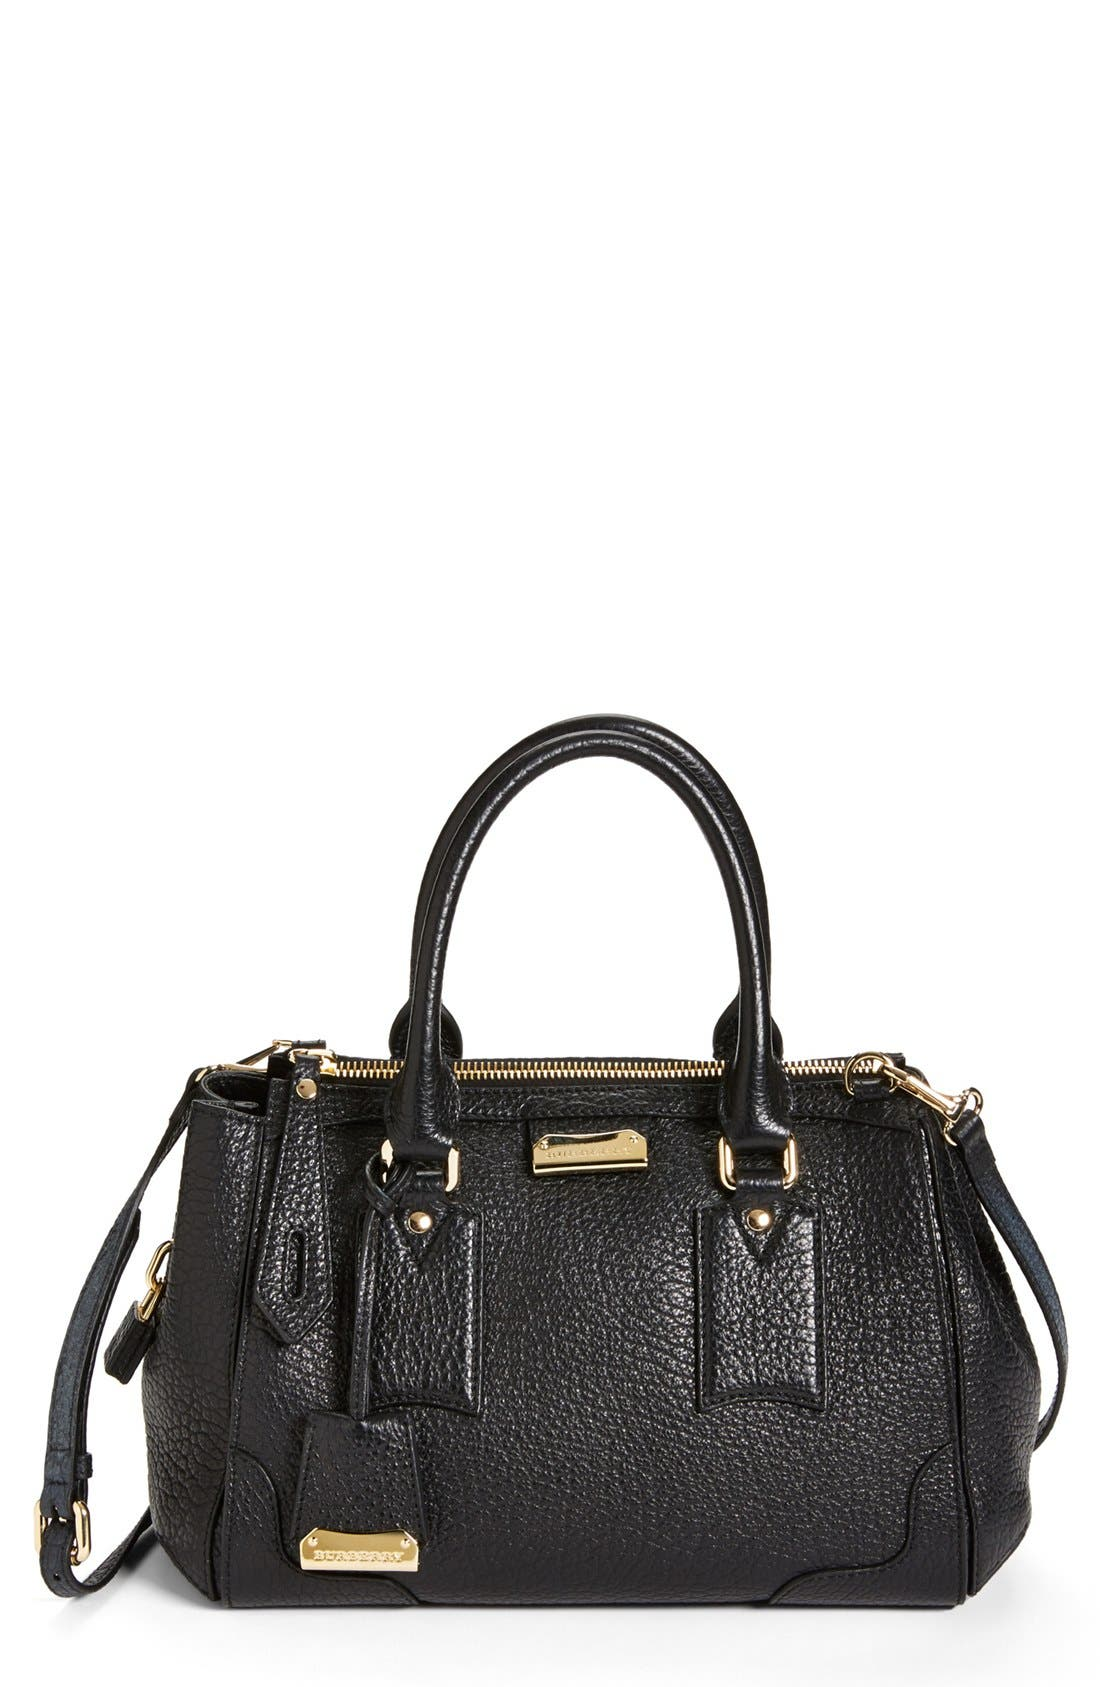 Main Image - Burberry 'Gladstone - Small' Leather Satchel